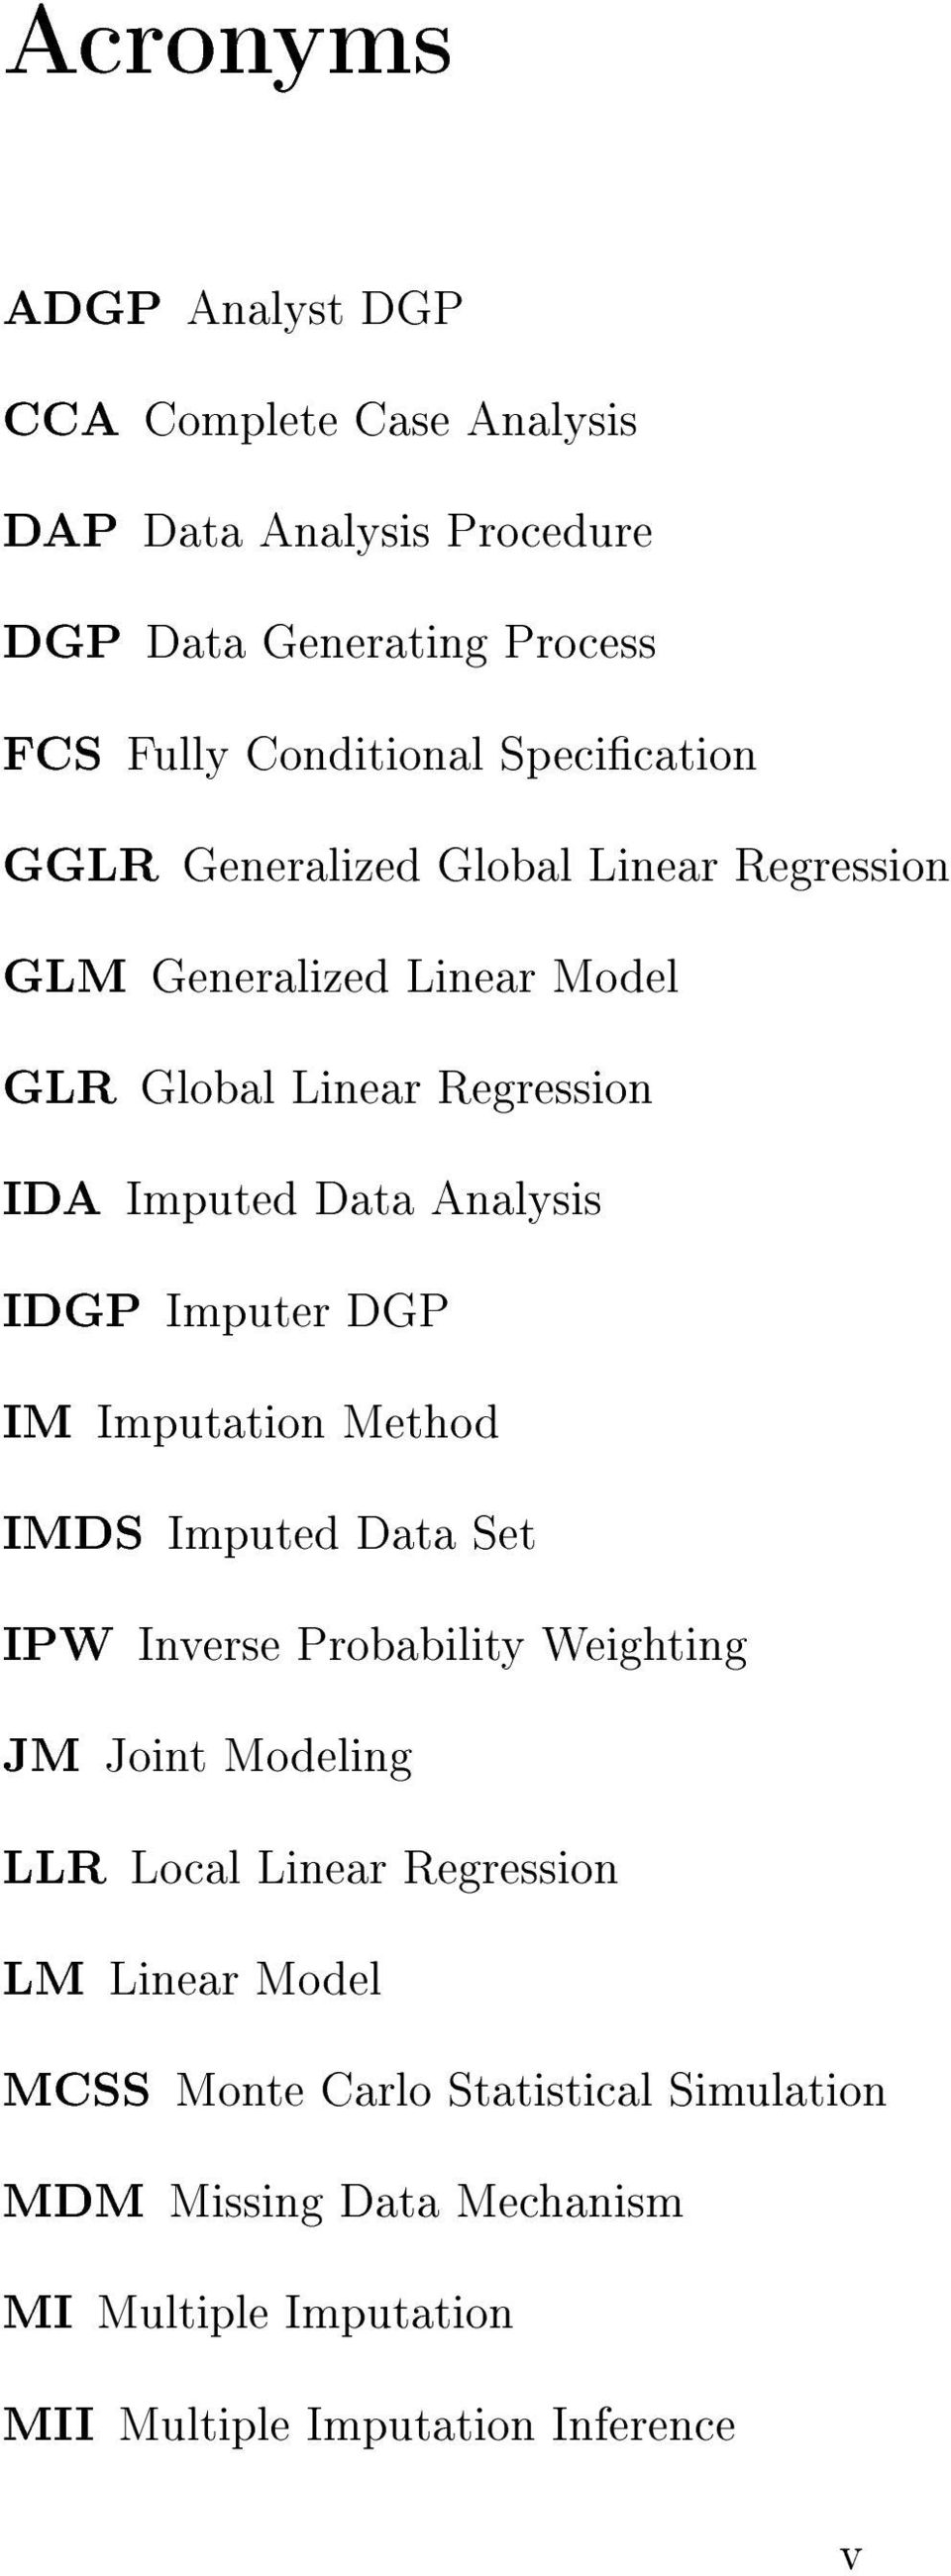 IDGP Imputer DGP IM Imputation Method IMDS Imputed Data Set IPW Inverse Probability Weighting JM Joint Modeling LLR Local Linear